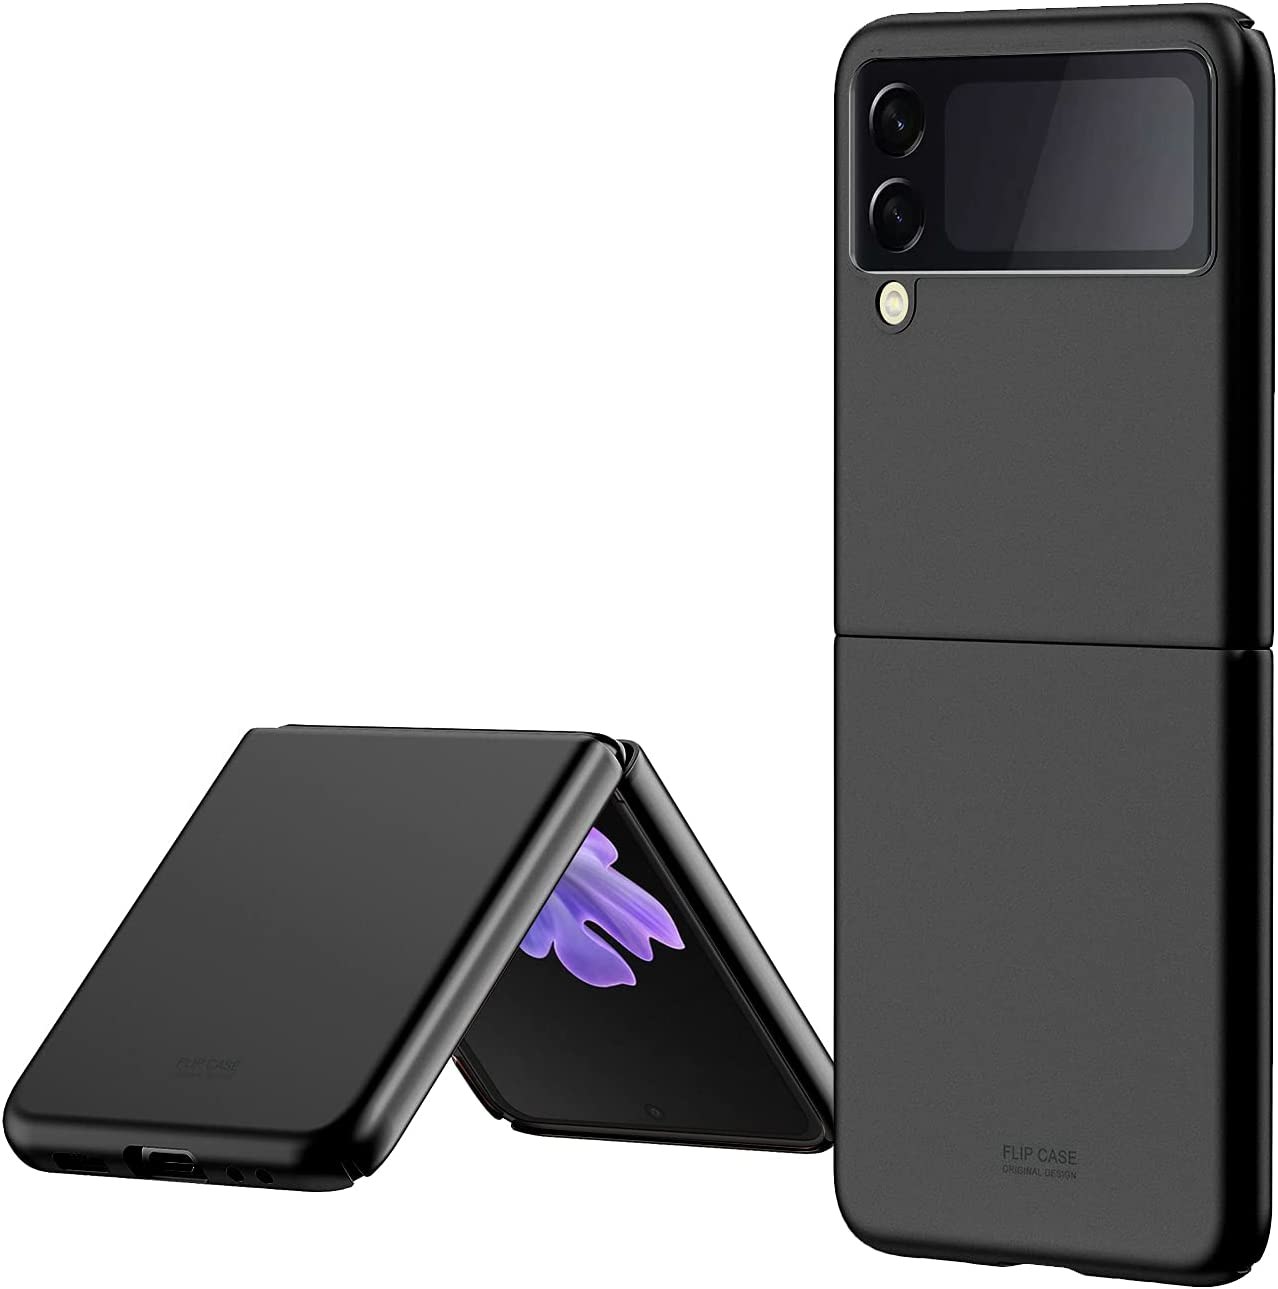 Galaxy Z Flip 3 Case, Shockproof Protective Anti-Scratch Cases with Reinforced Corners Bumper Edges, Compatible with Galaxy Z Flip 3 (Black)